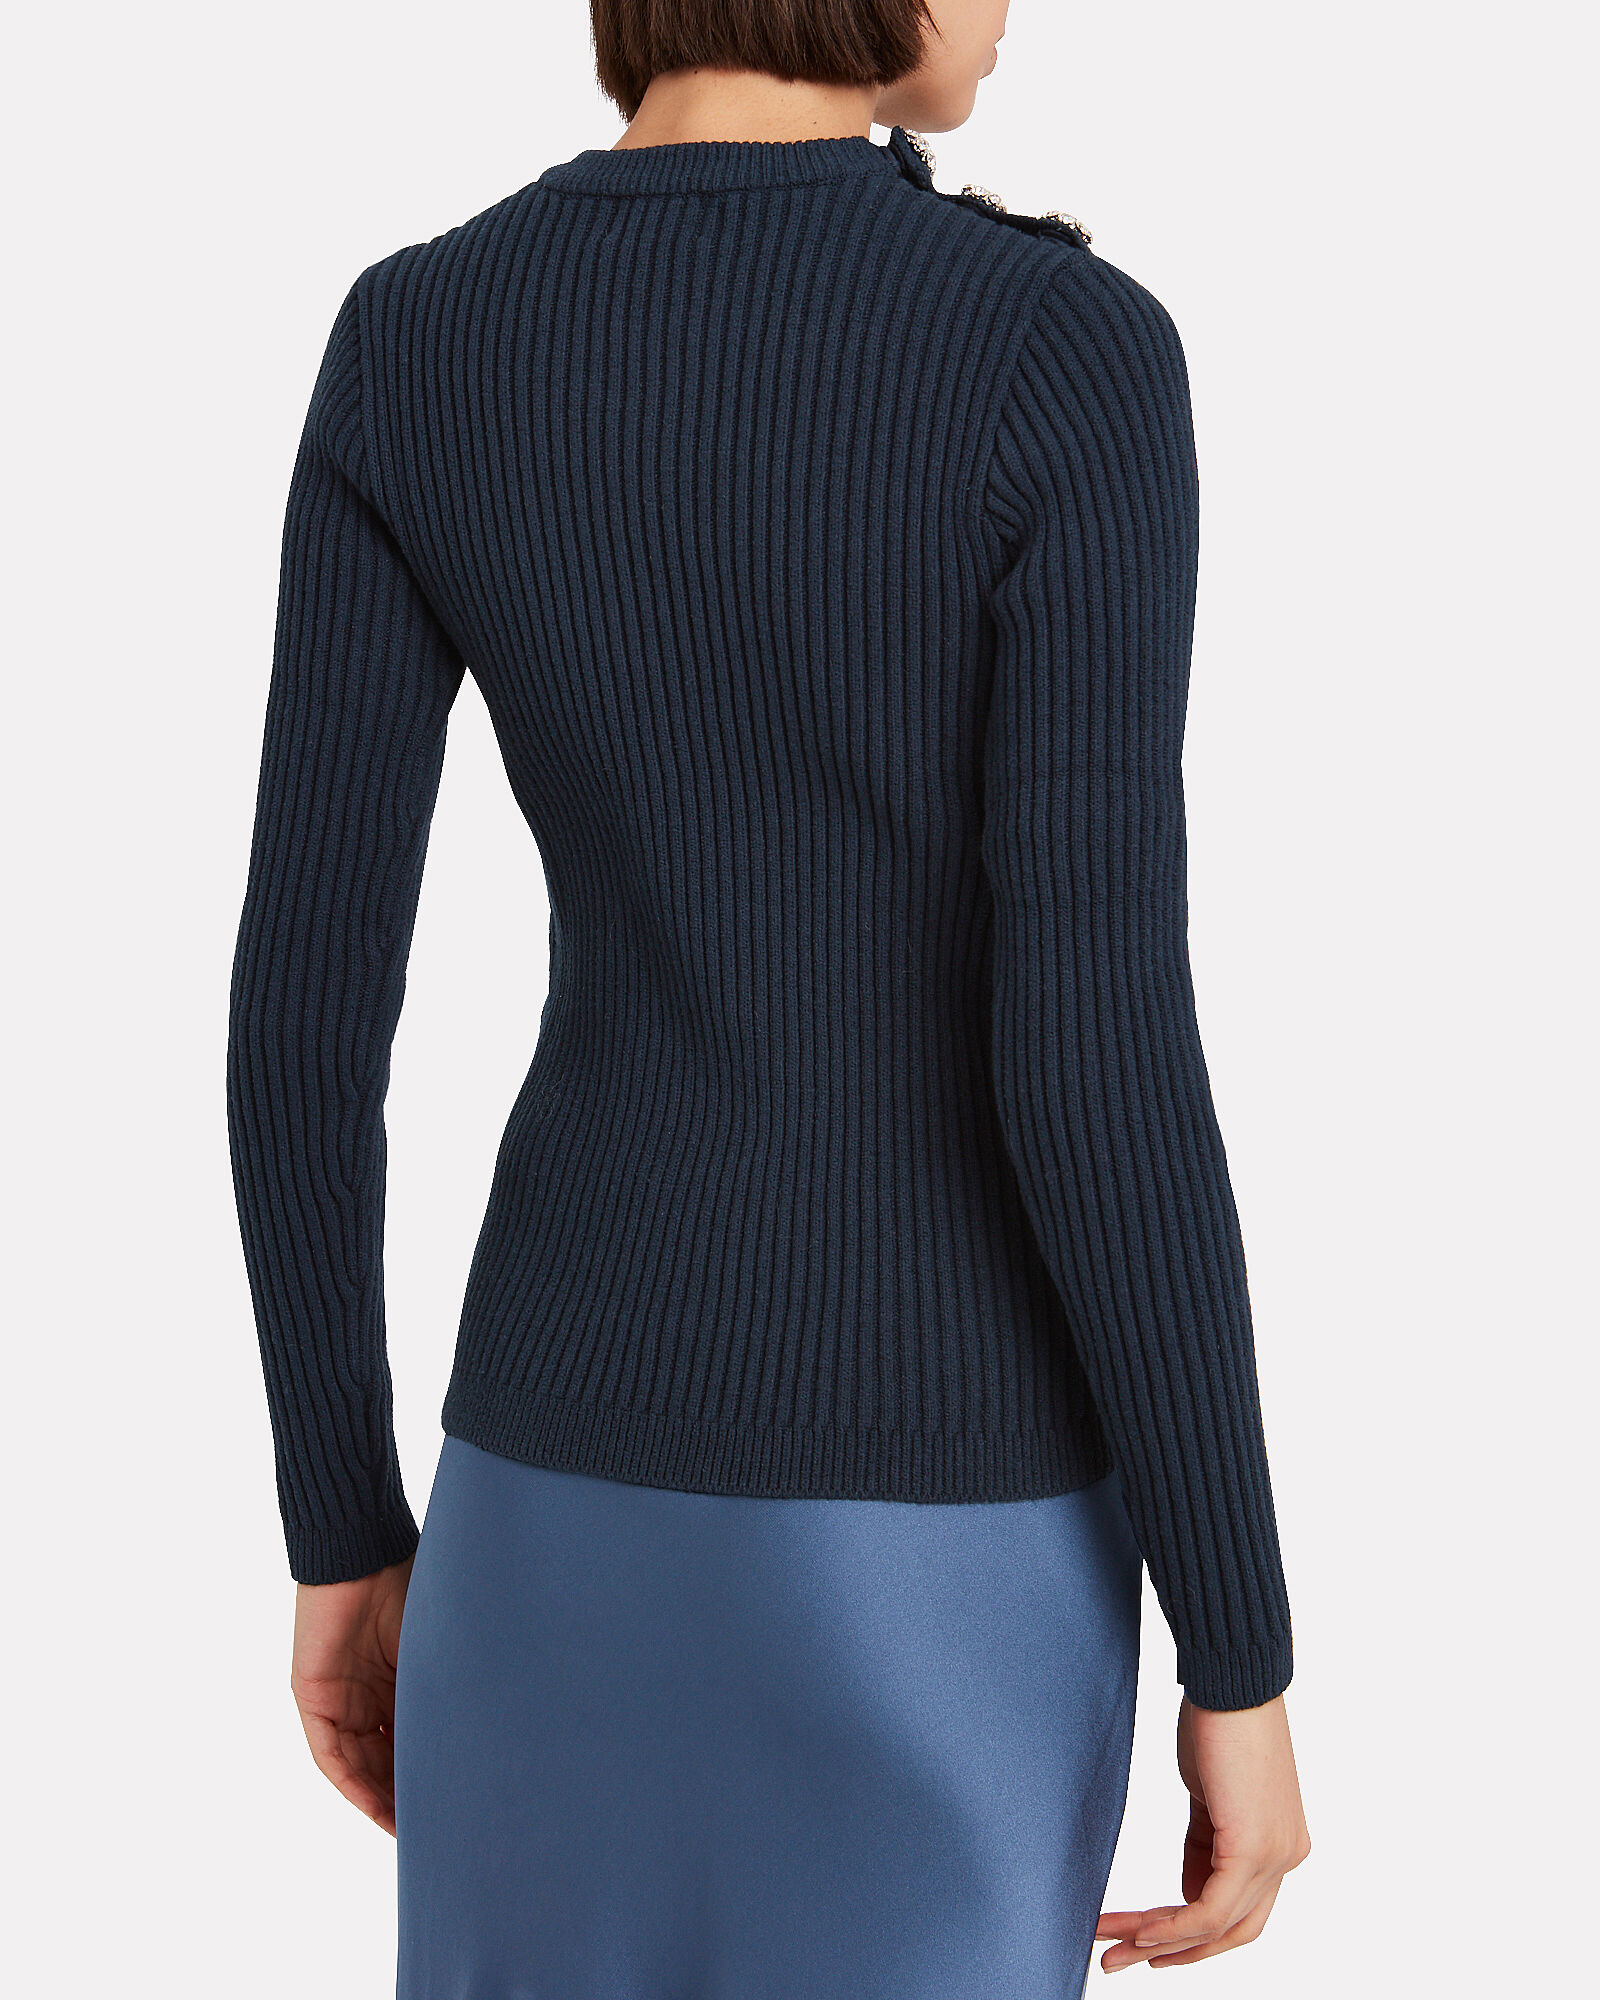 Embellished Cotton Crewneck Sweater, NAVY, hi-res